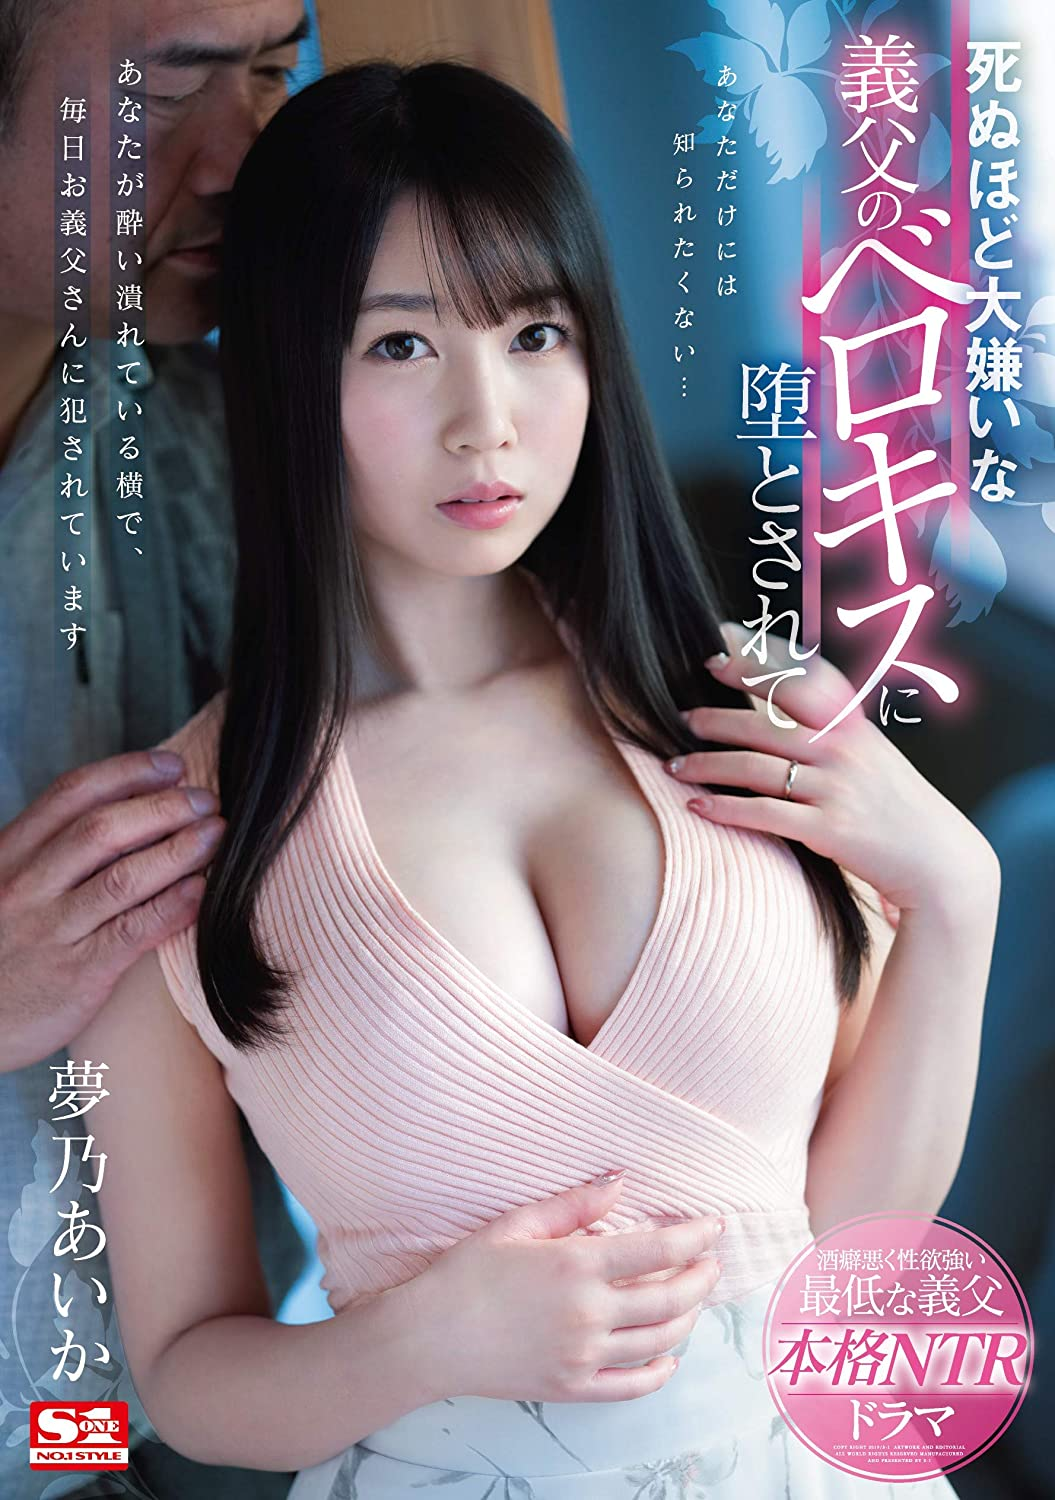 [SSNI-496] (English subbed) Succumbing To My Father-in-law That I Hate So Much I Wanna To Die, V*****ed By Her Father-in-law While Her Husband Is Passed Out Drunk - Aika Yumeno